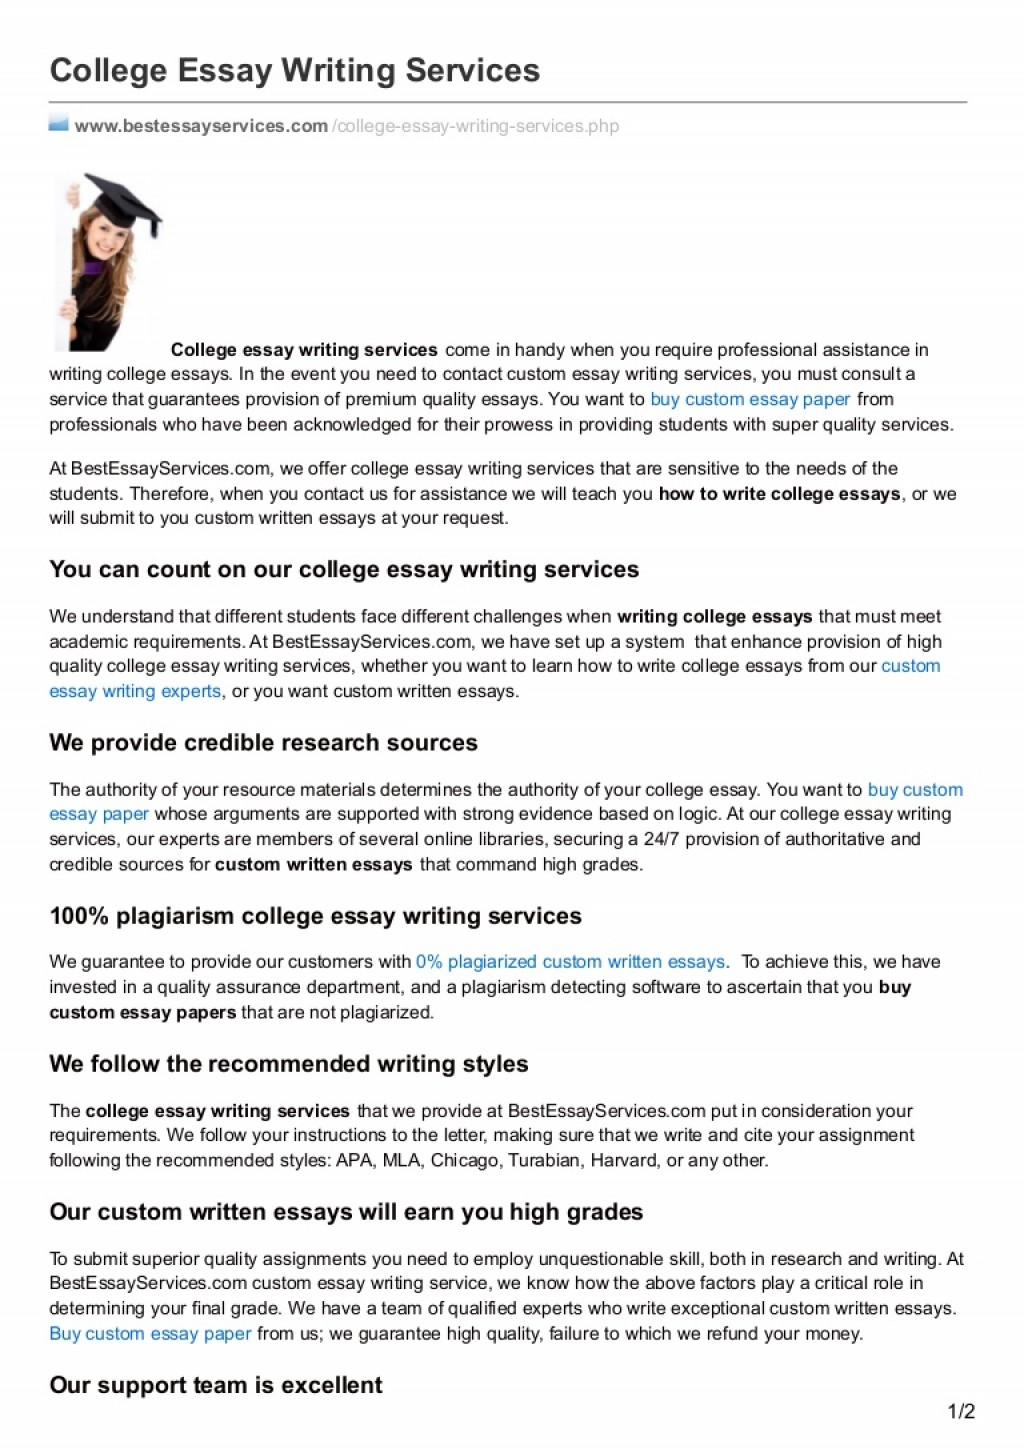 011 Bestessayservices Com College Essay Writing Services I Want To Write Essays For Money Thumbn Best University High School Reddit Large